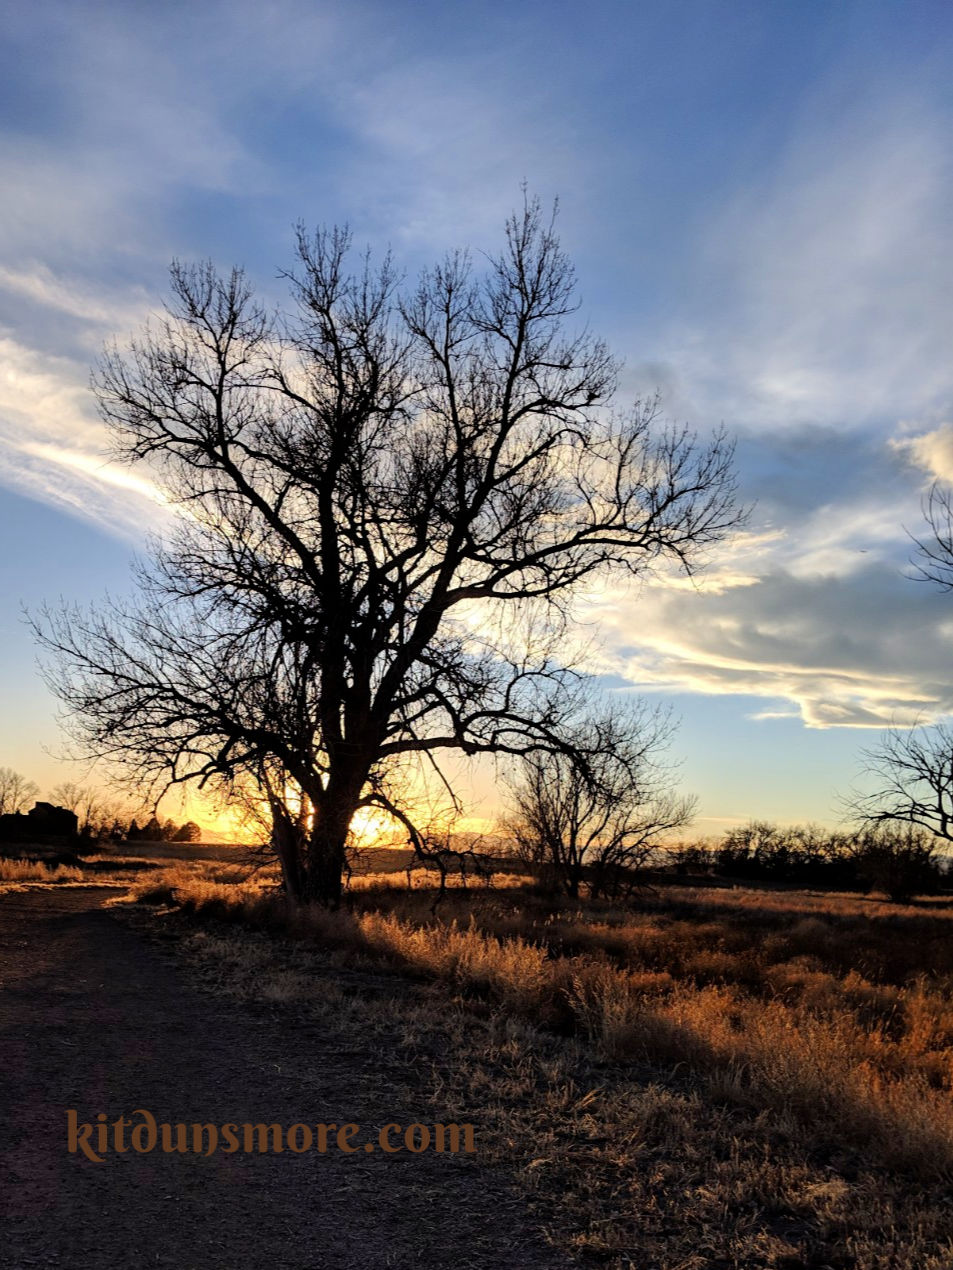 Sunset behind a tree at Barr Lake State Park. Photo by Kit Dunsmore